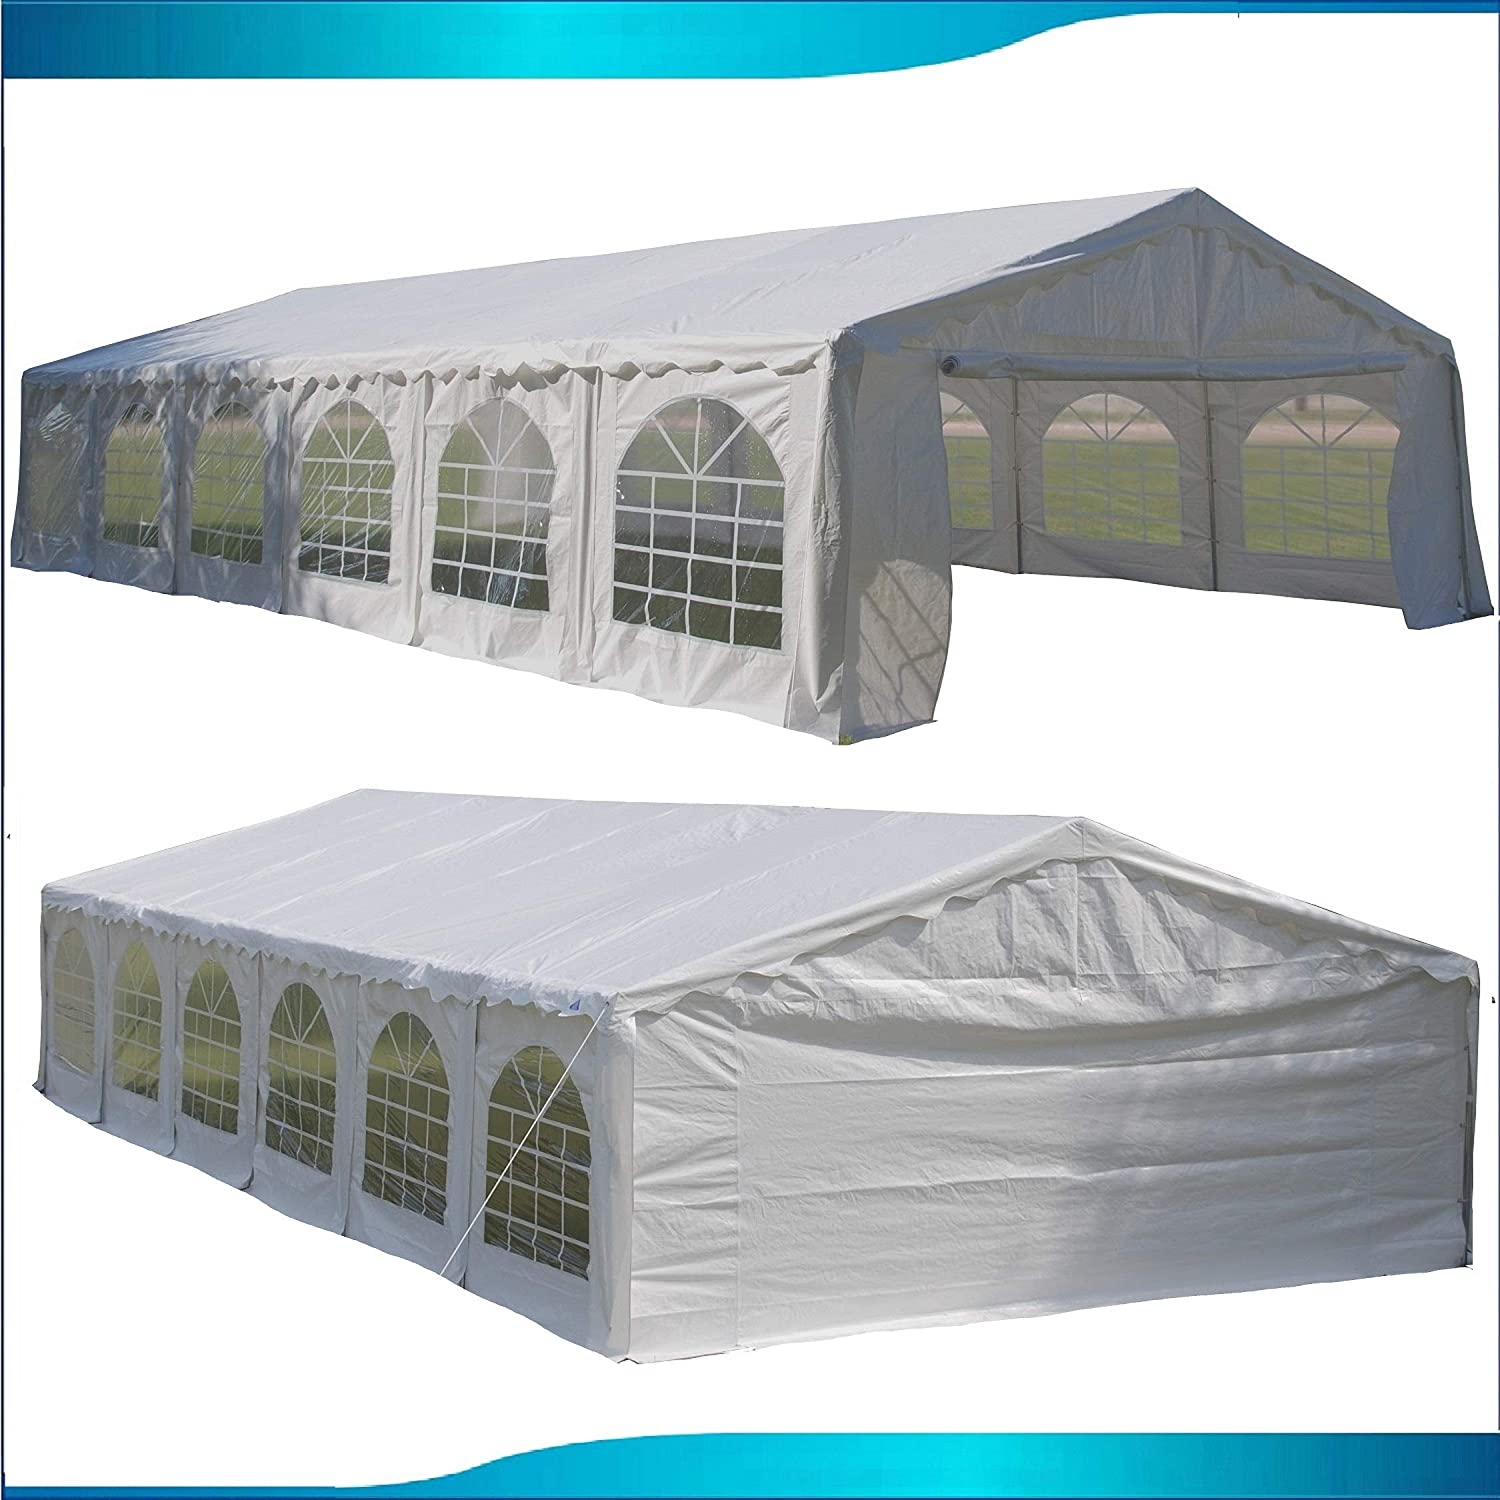 DELTA Canopies Budget PE Party Tent Canopy Shelter White – 40 x20